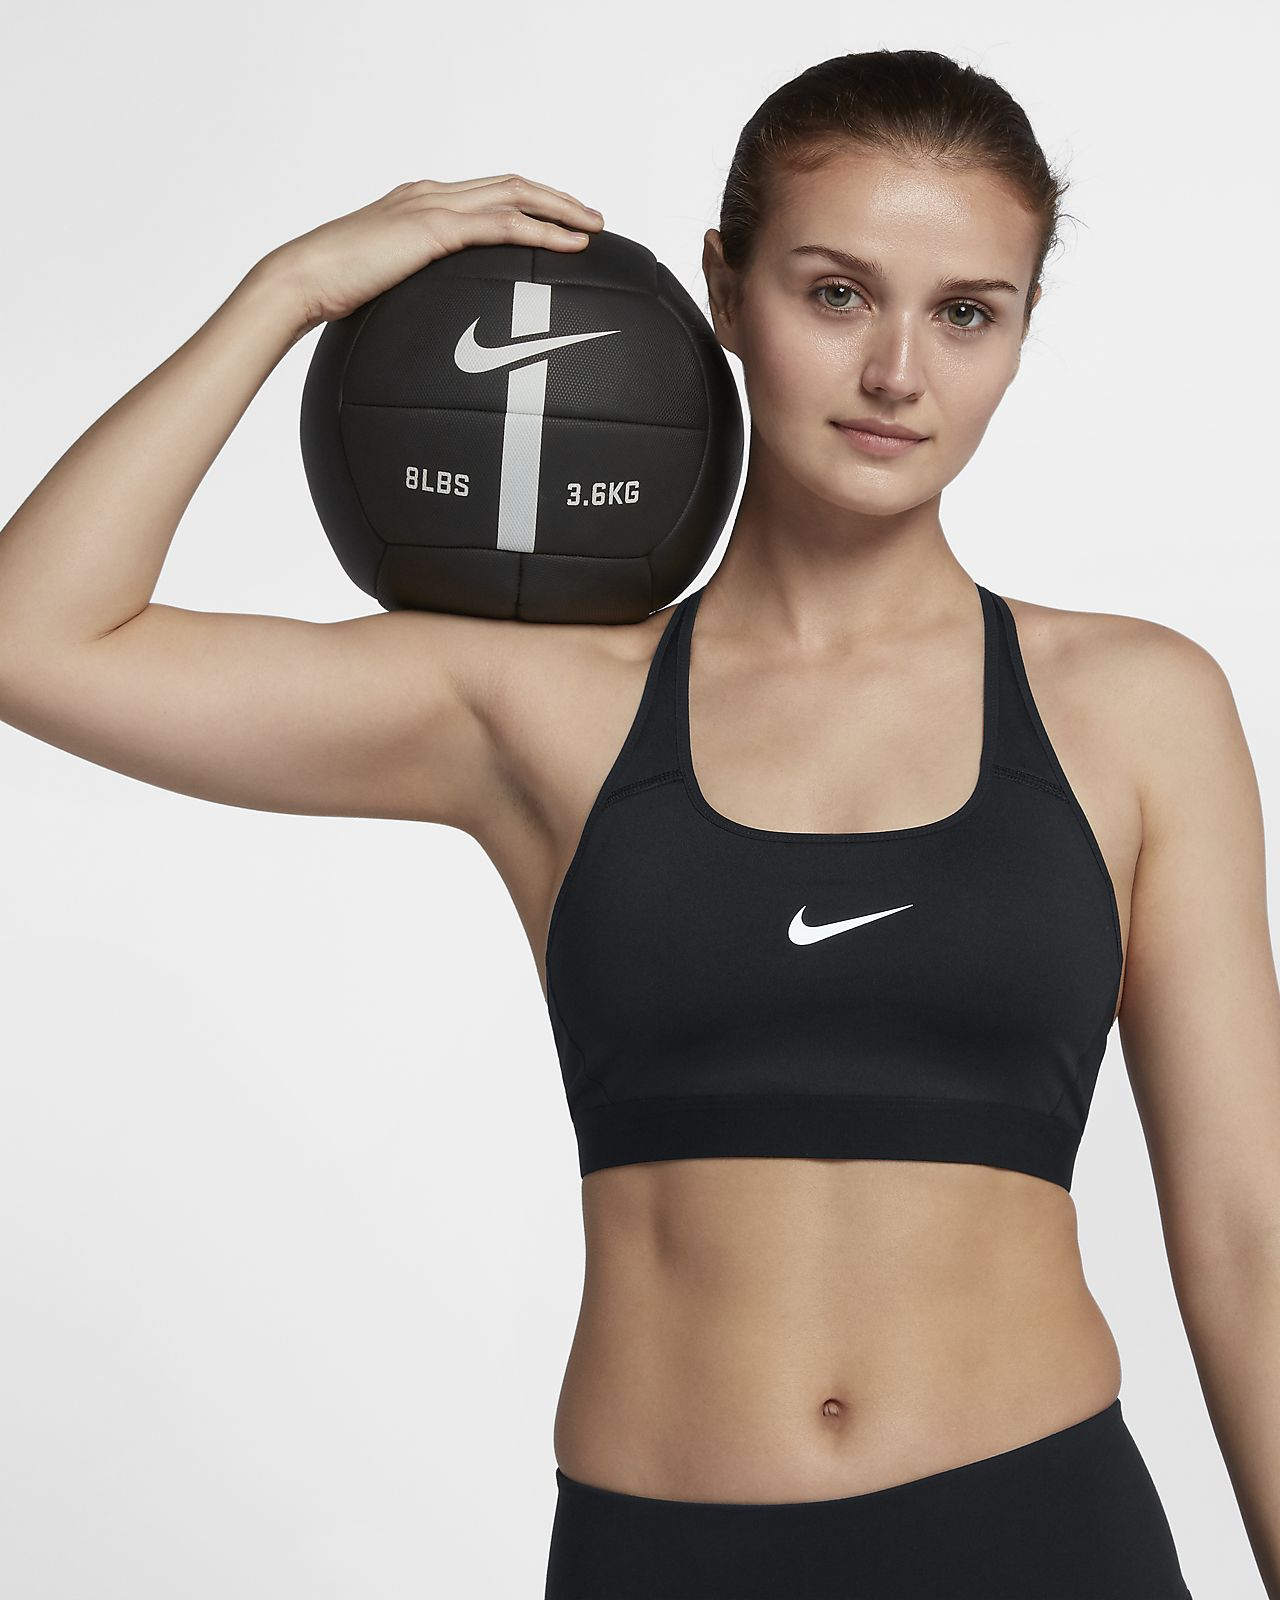 Geniue Stockist For Sale Pink Classic Strappy Sports Bra Nike Clearance Outlet Locations Free Shipping Cheap Price Outlet Best Prices Cheap Online Shop FJBmh